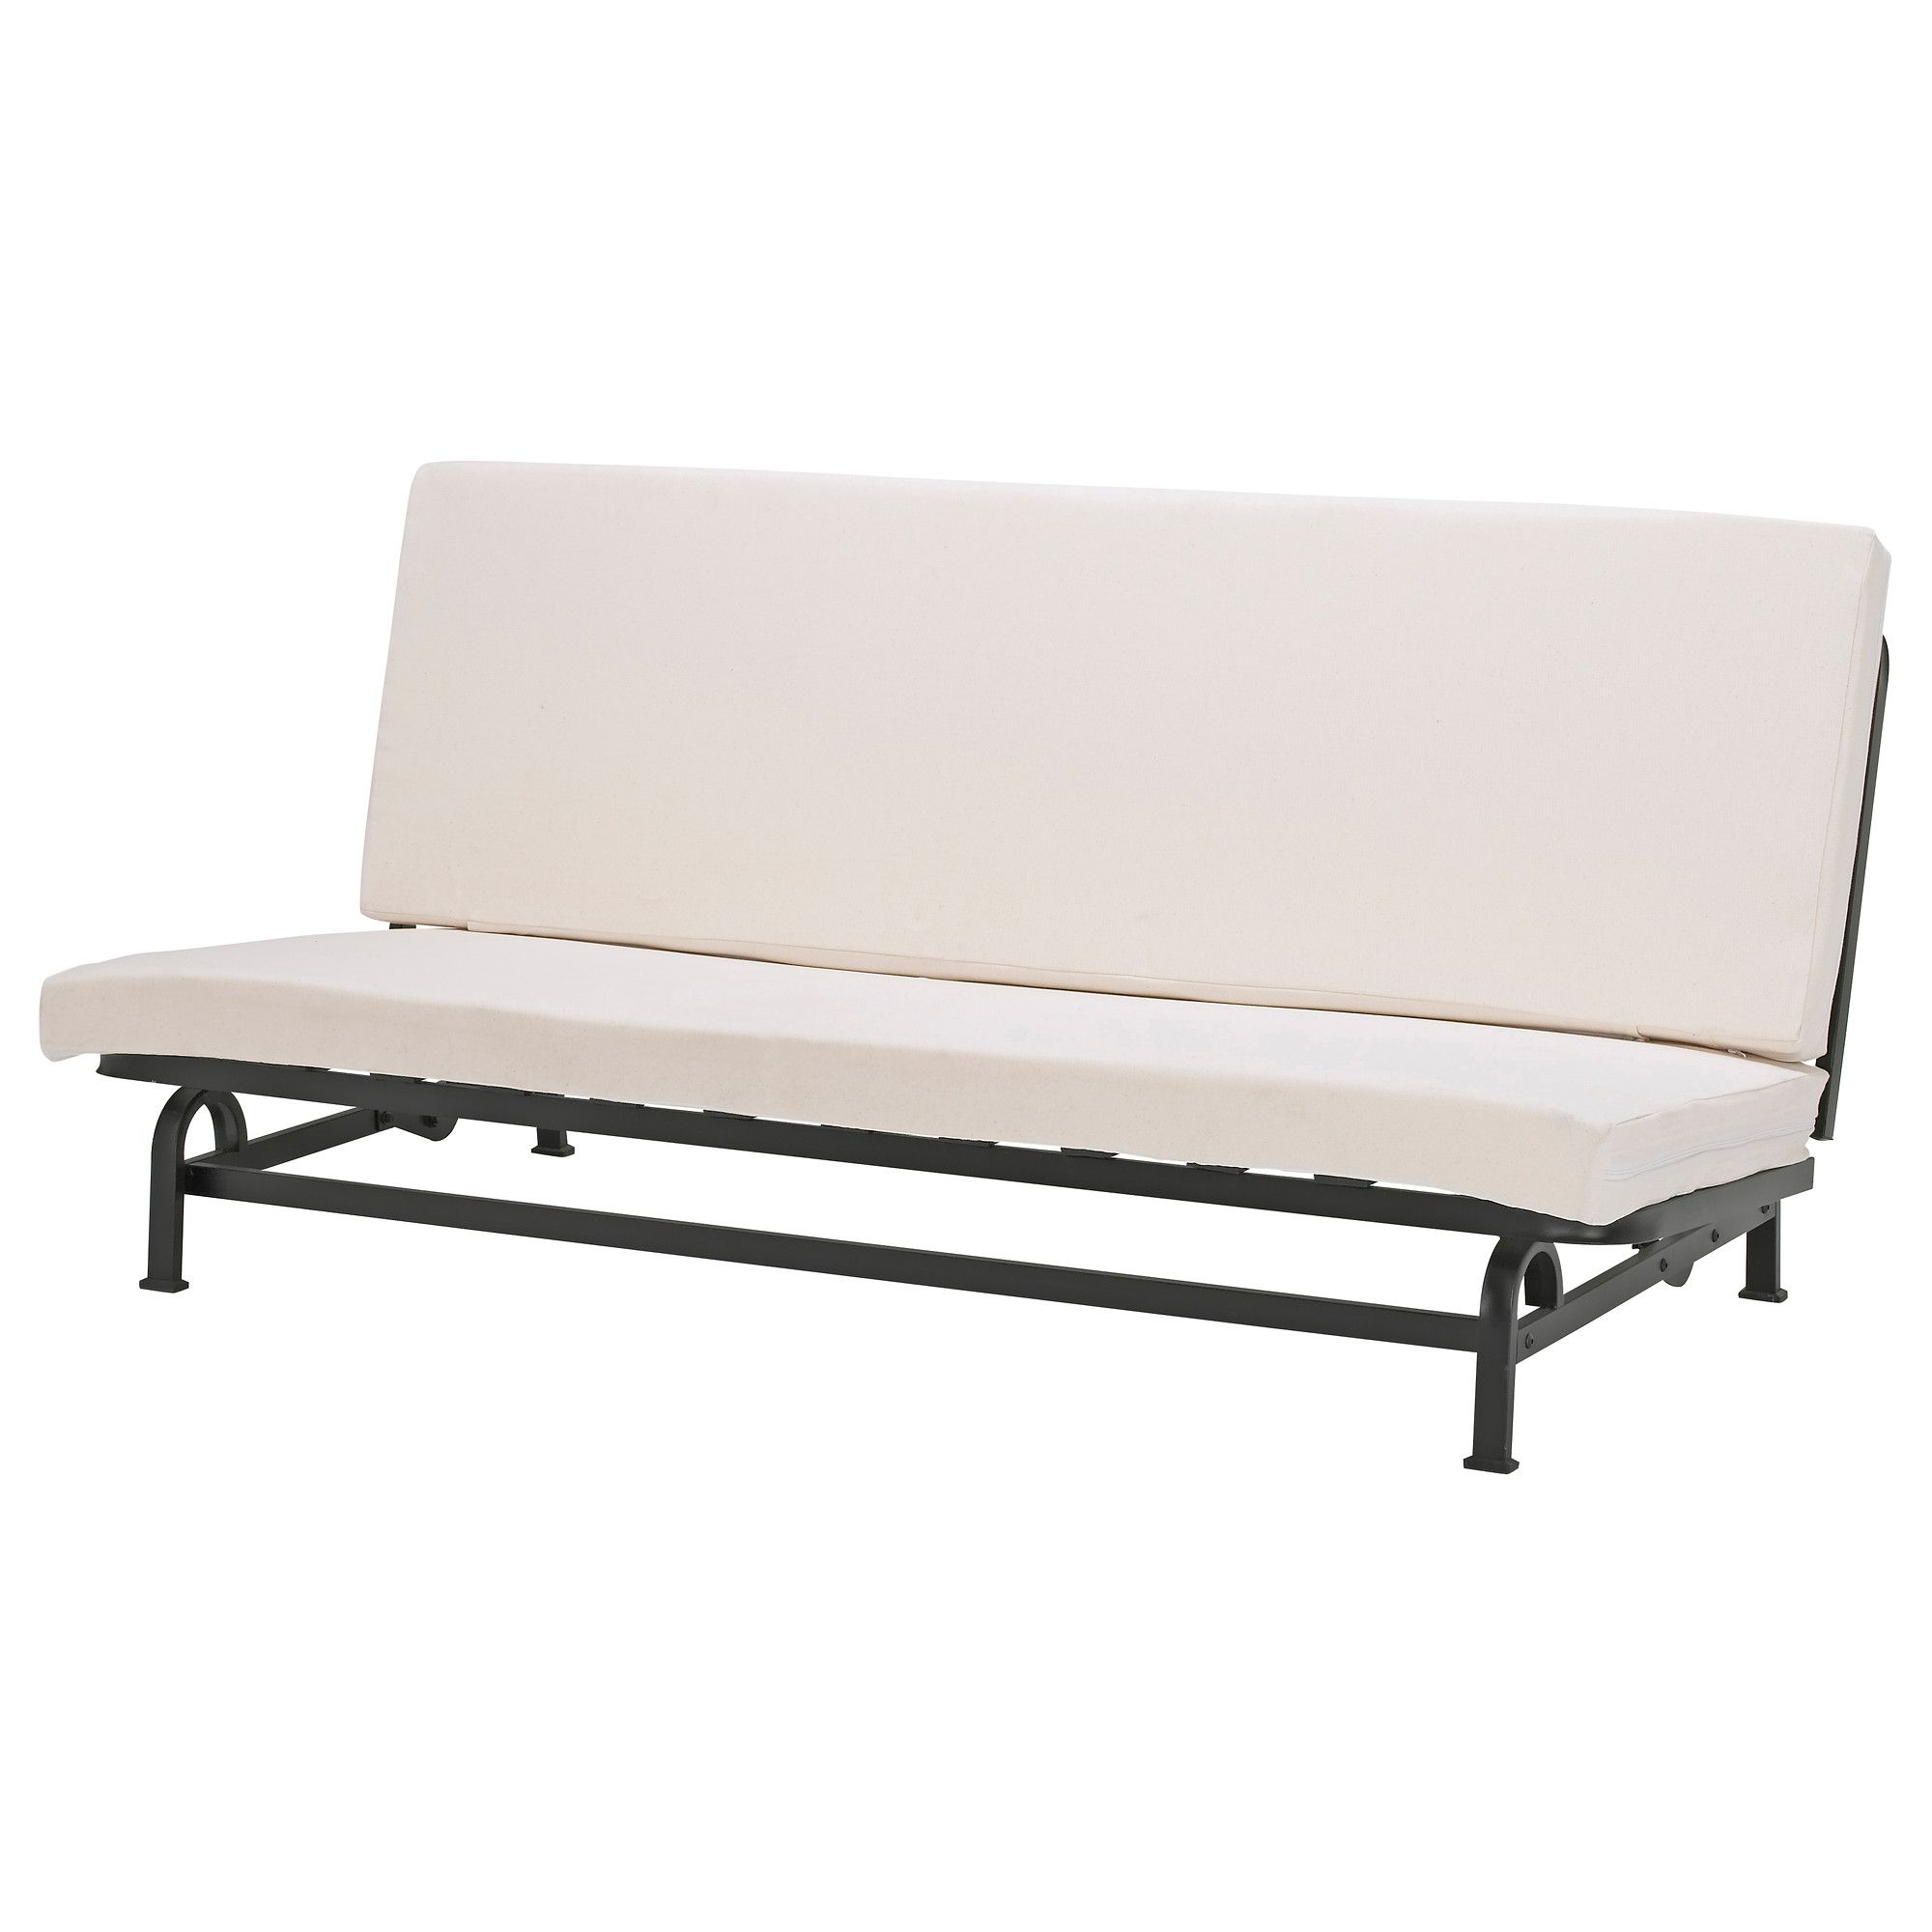 EXARBY Three Seat Sofa Bed   IKEA